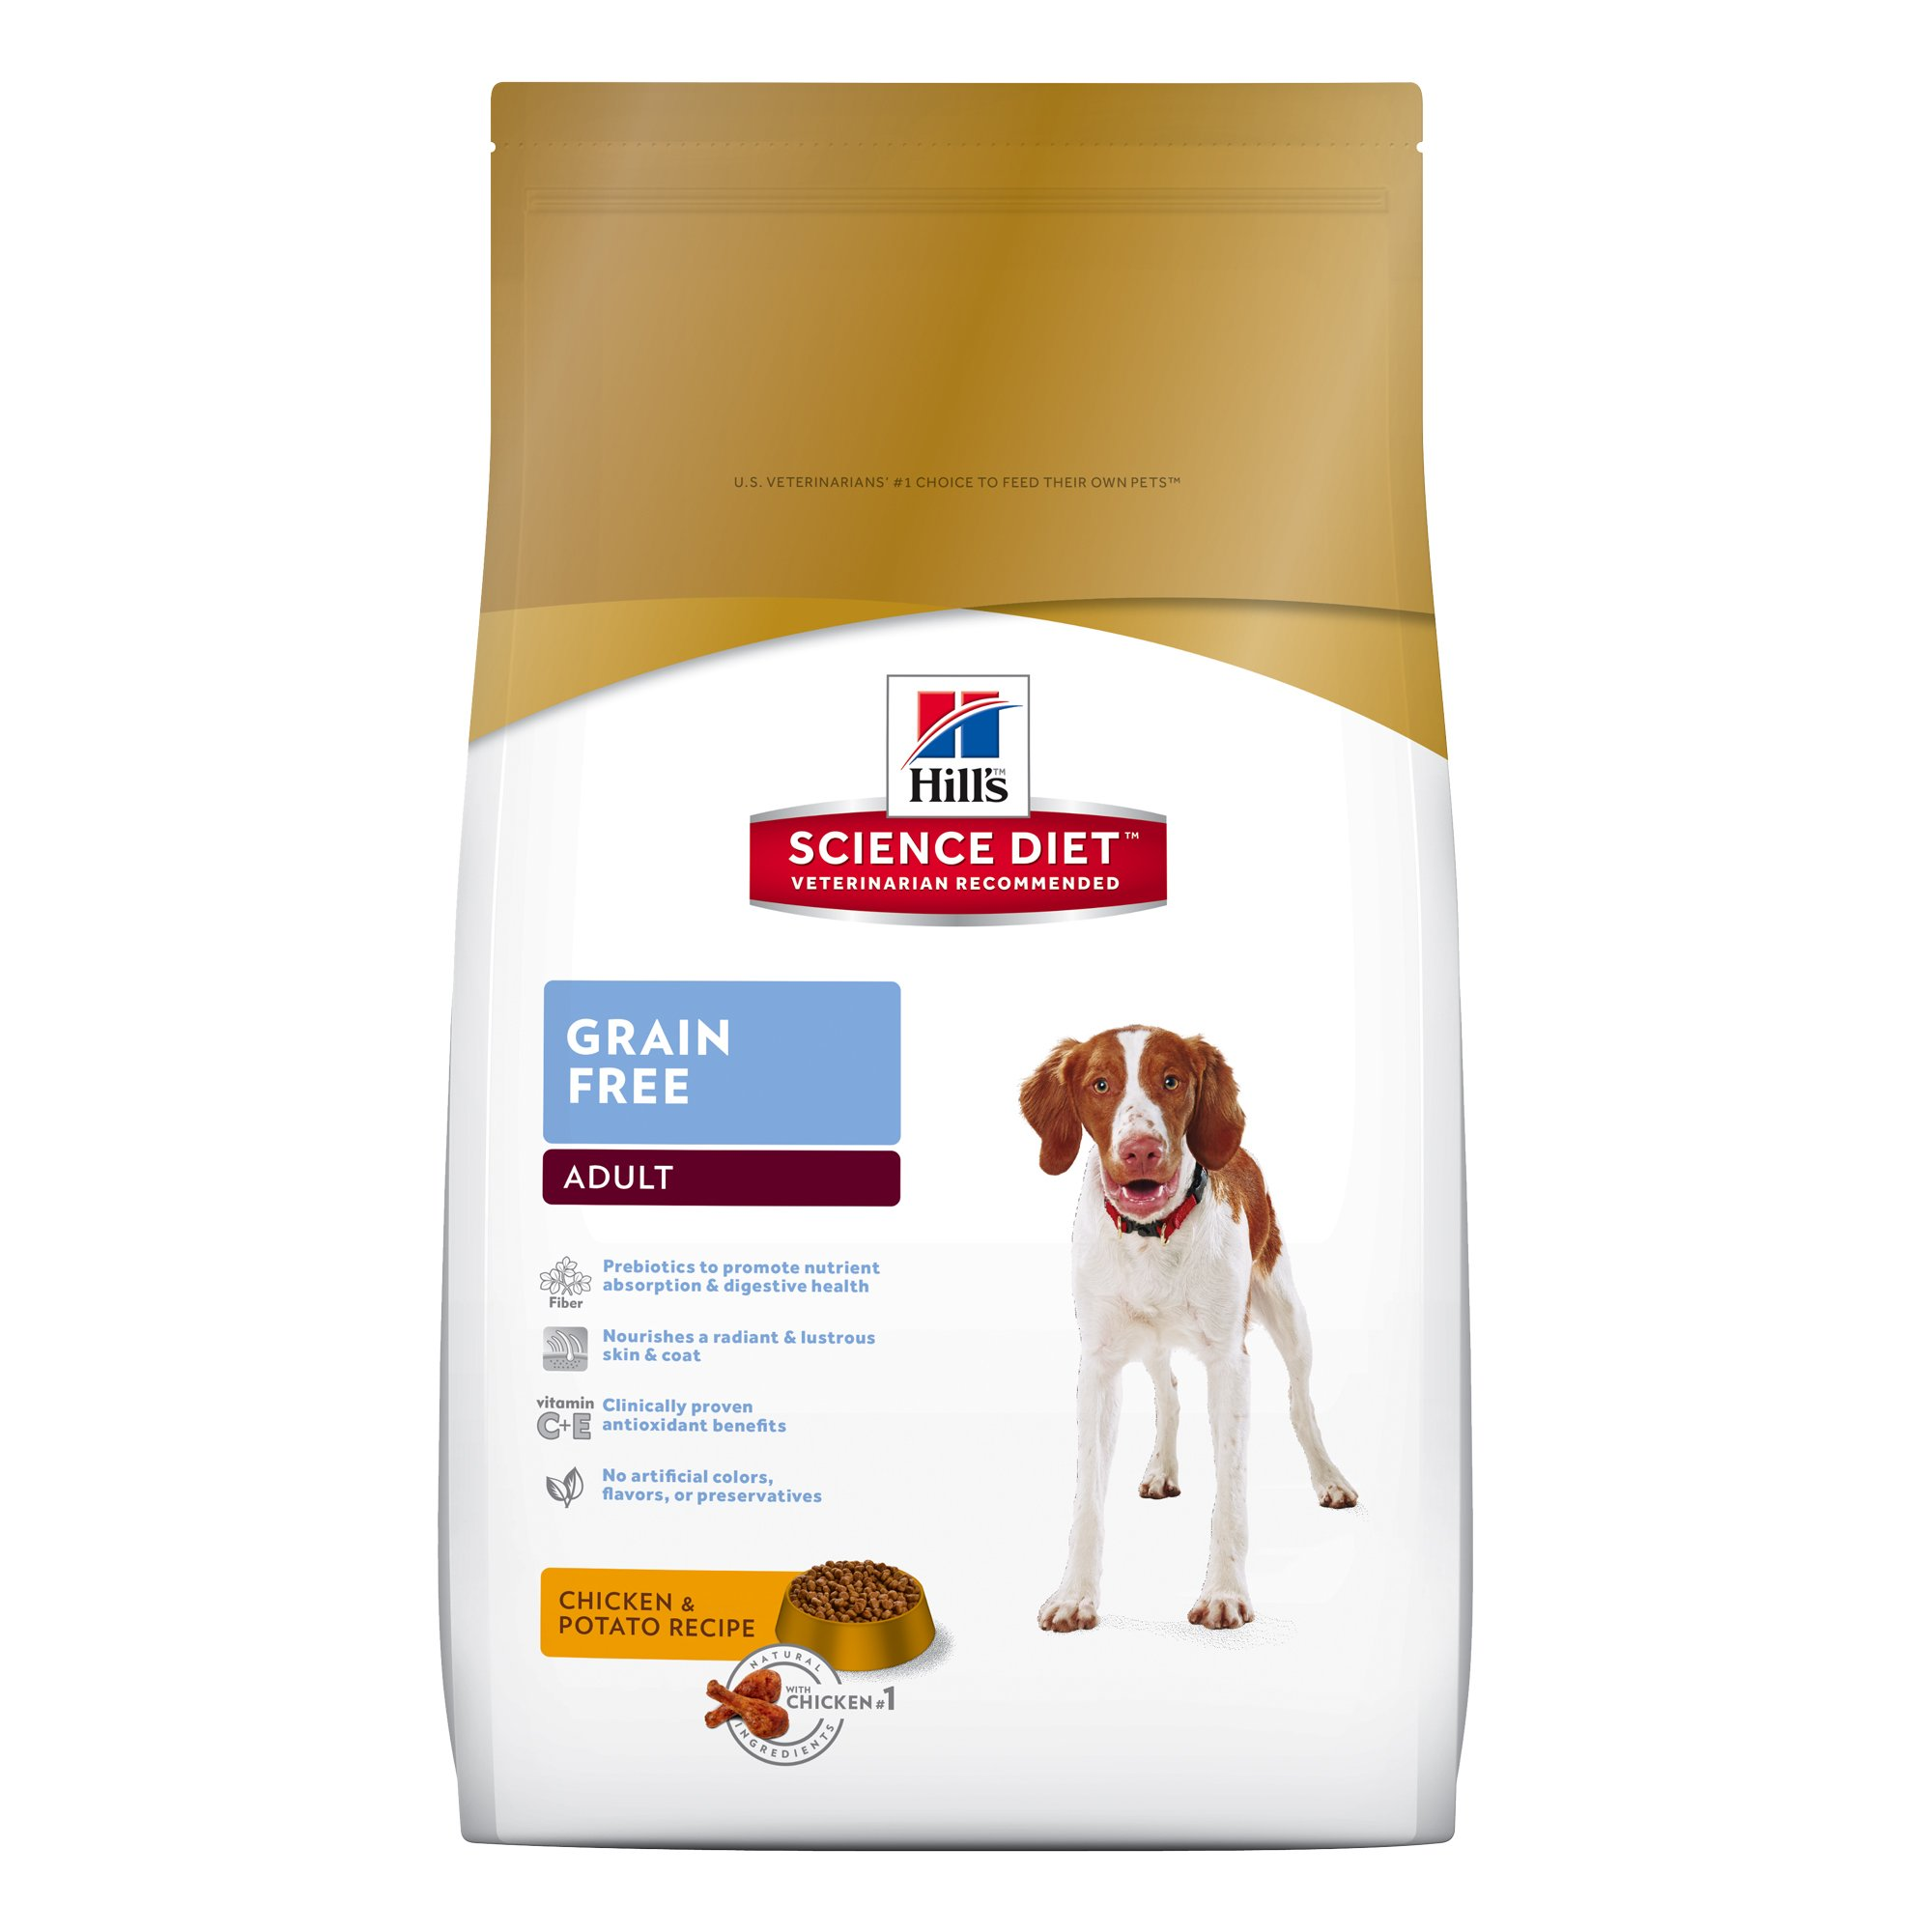 Hill's Science Diet Dry Dog Food, Adult, Grain Free Chicken & Potato Recipe, 21 Lb Bag by Hill's Science Diet (Image #1)